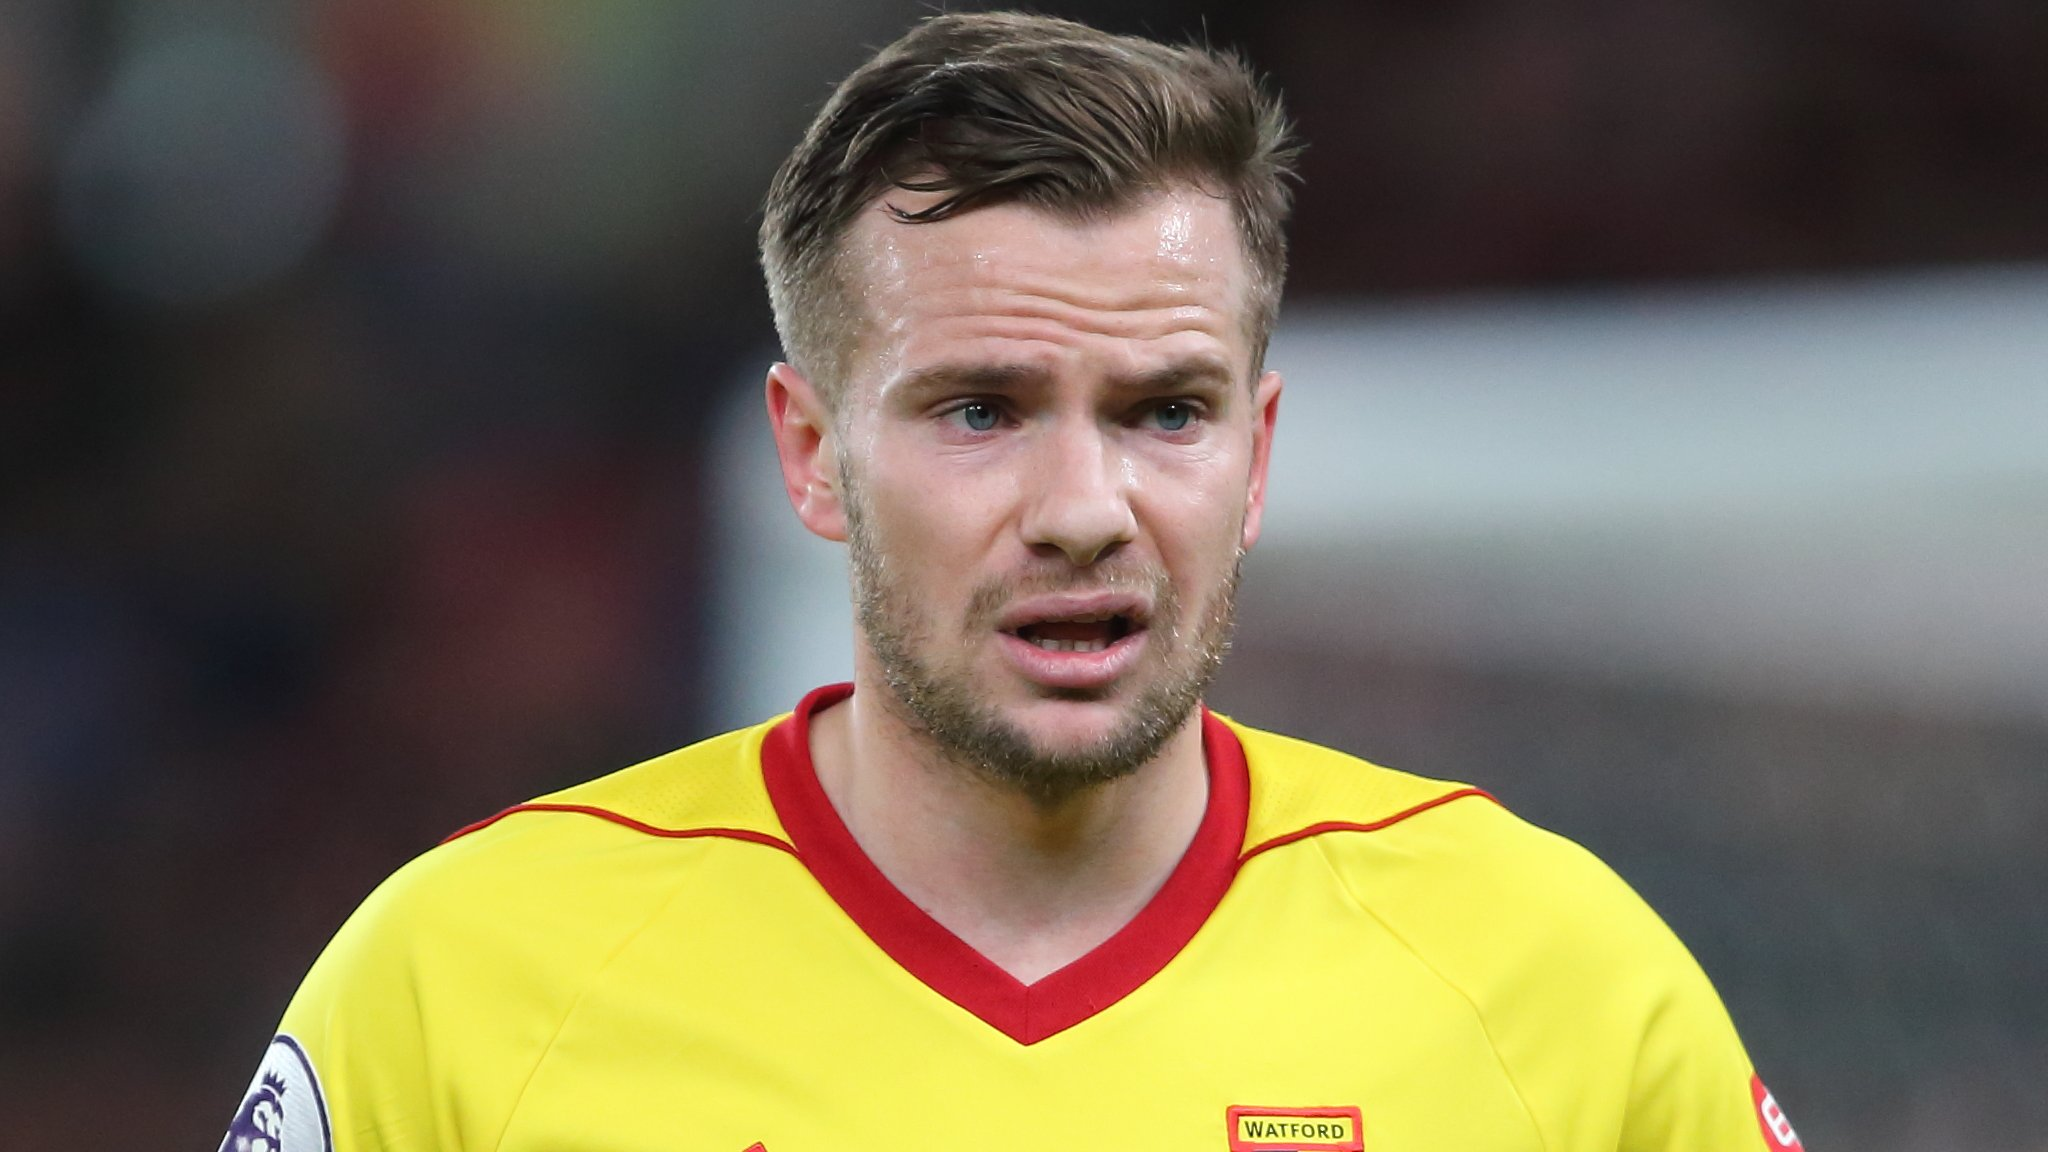 Watford's Cleverley to miss start of season